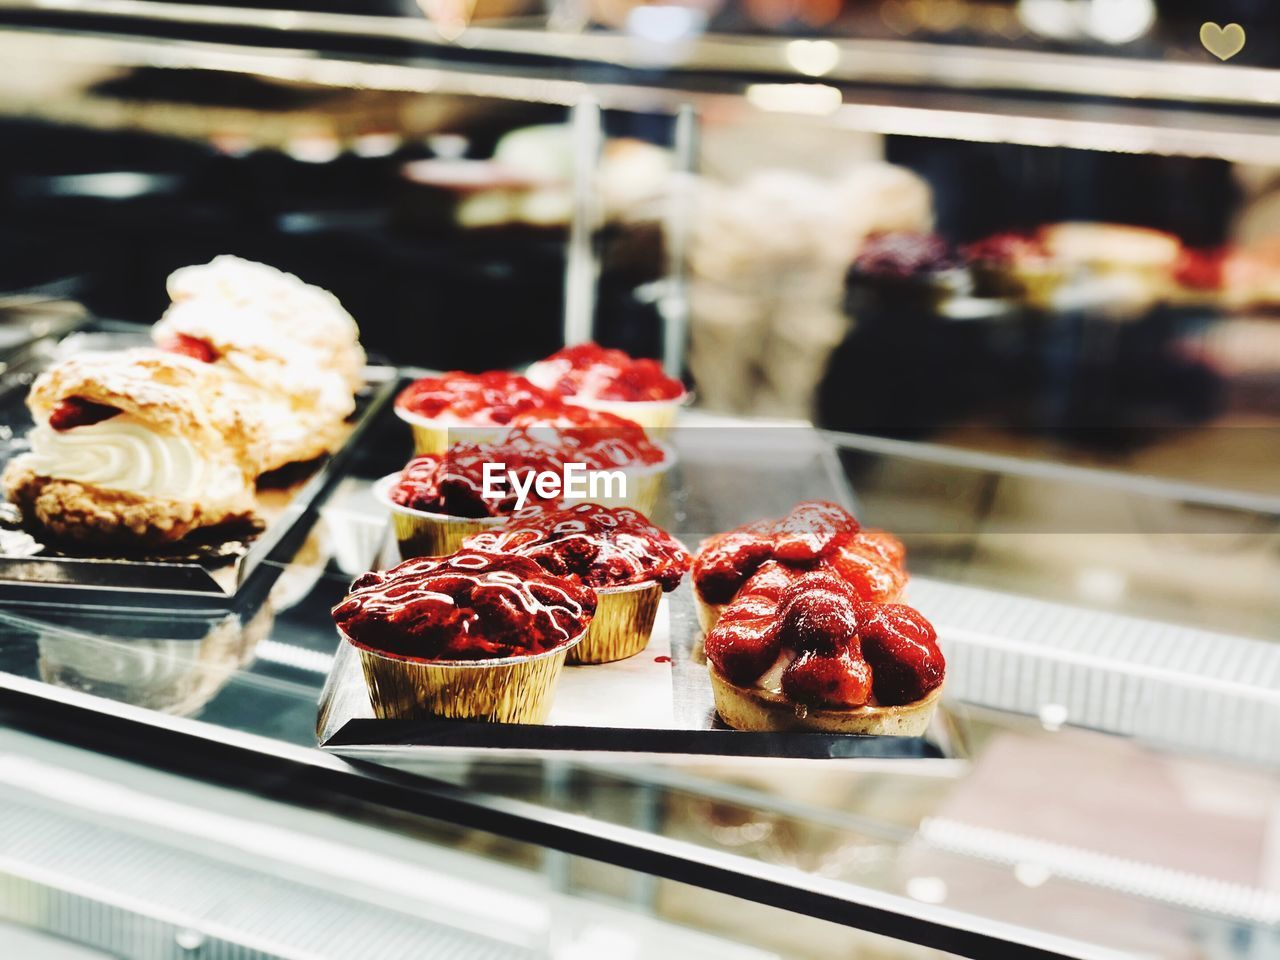 food, food and drink, freshness, sweet food, dessert, indulgence, sweet, indoors, store, still life, temptation, ready-to-eat, fruit, berry fruit, retail, unhealthy eating, no people, focus on foreground, plate, strawberry, display cabinet, retail display, baked pastry item, tray, tart - dessert